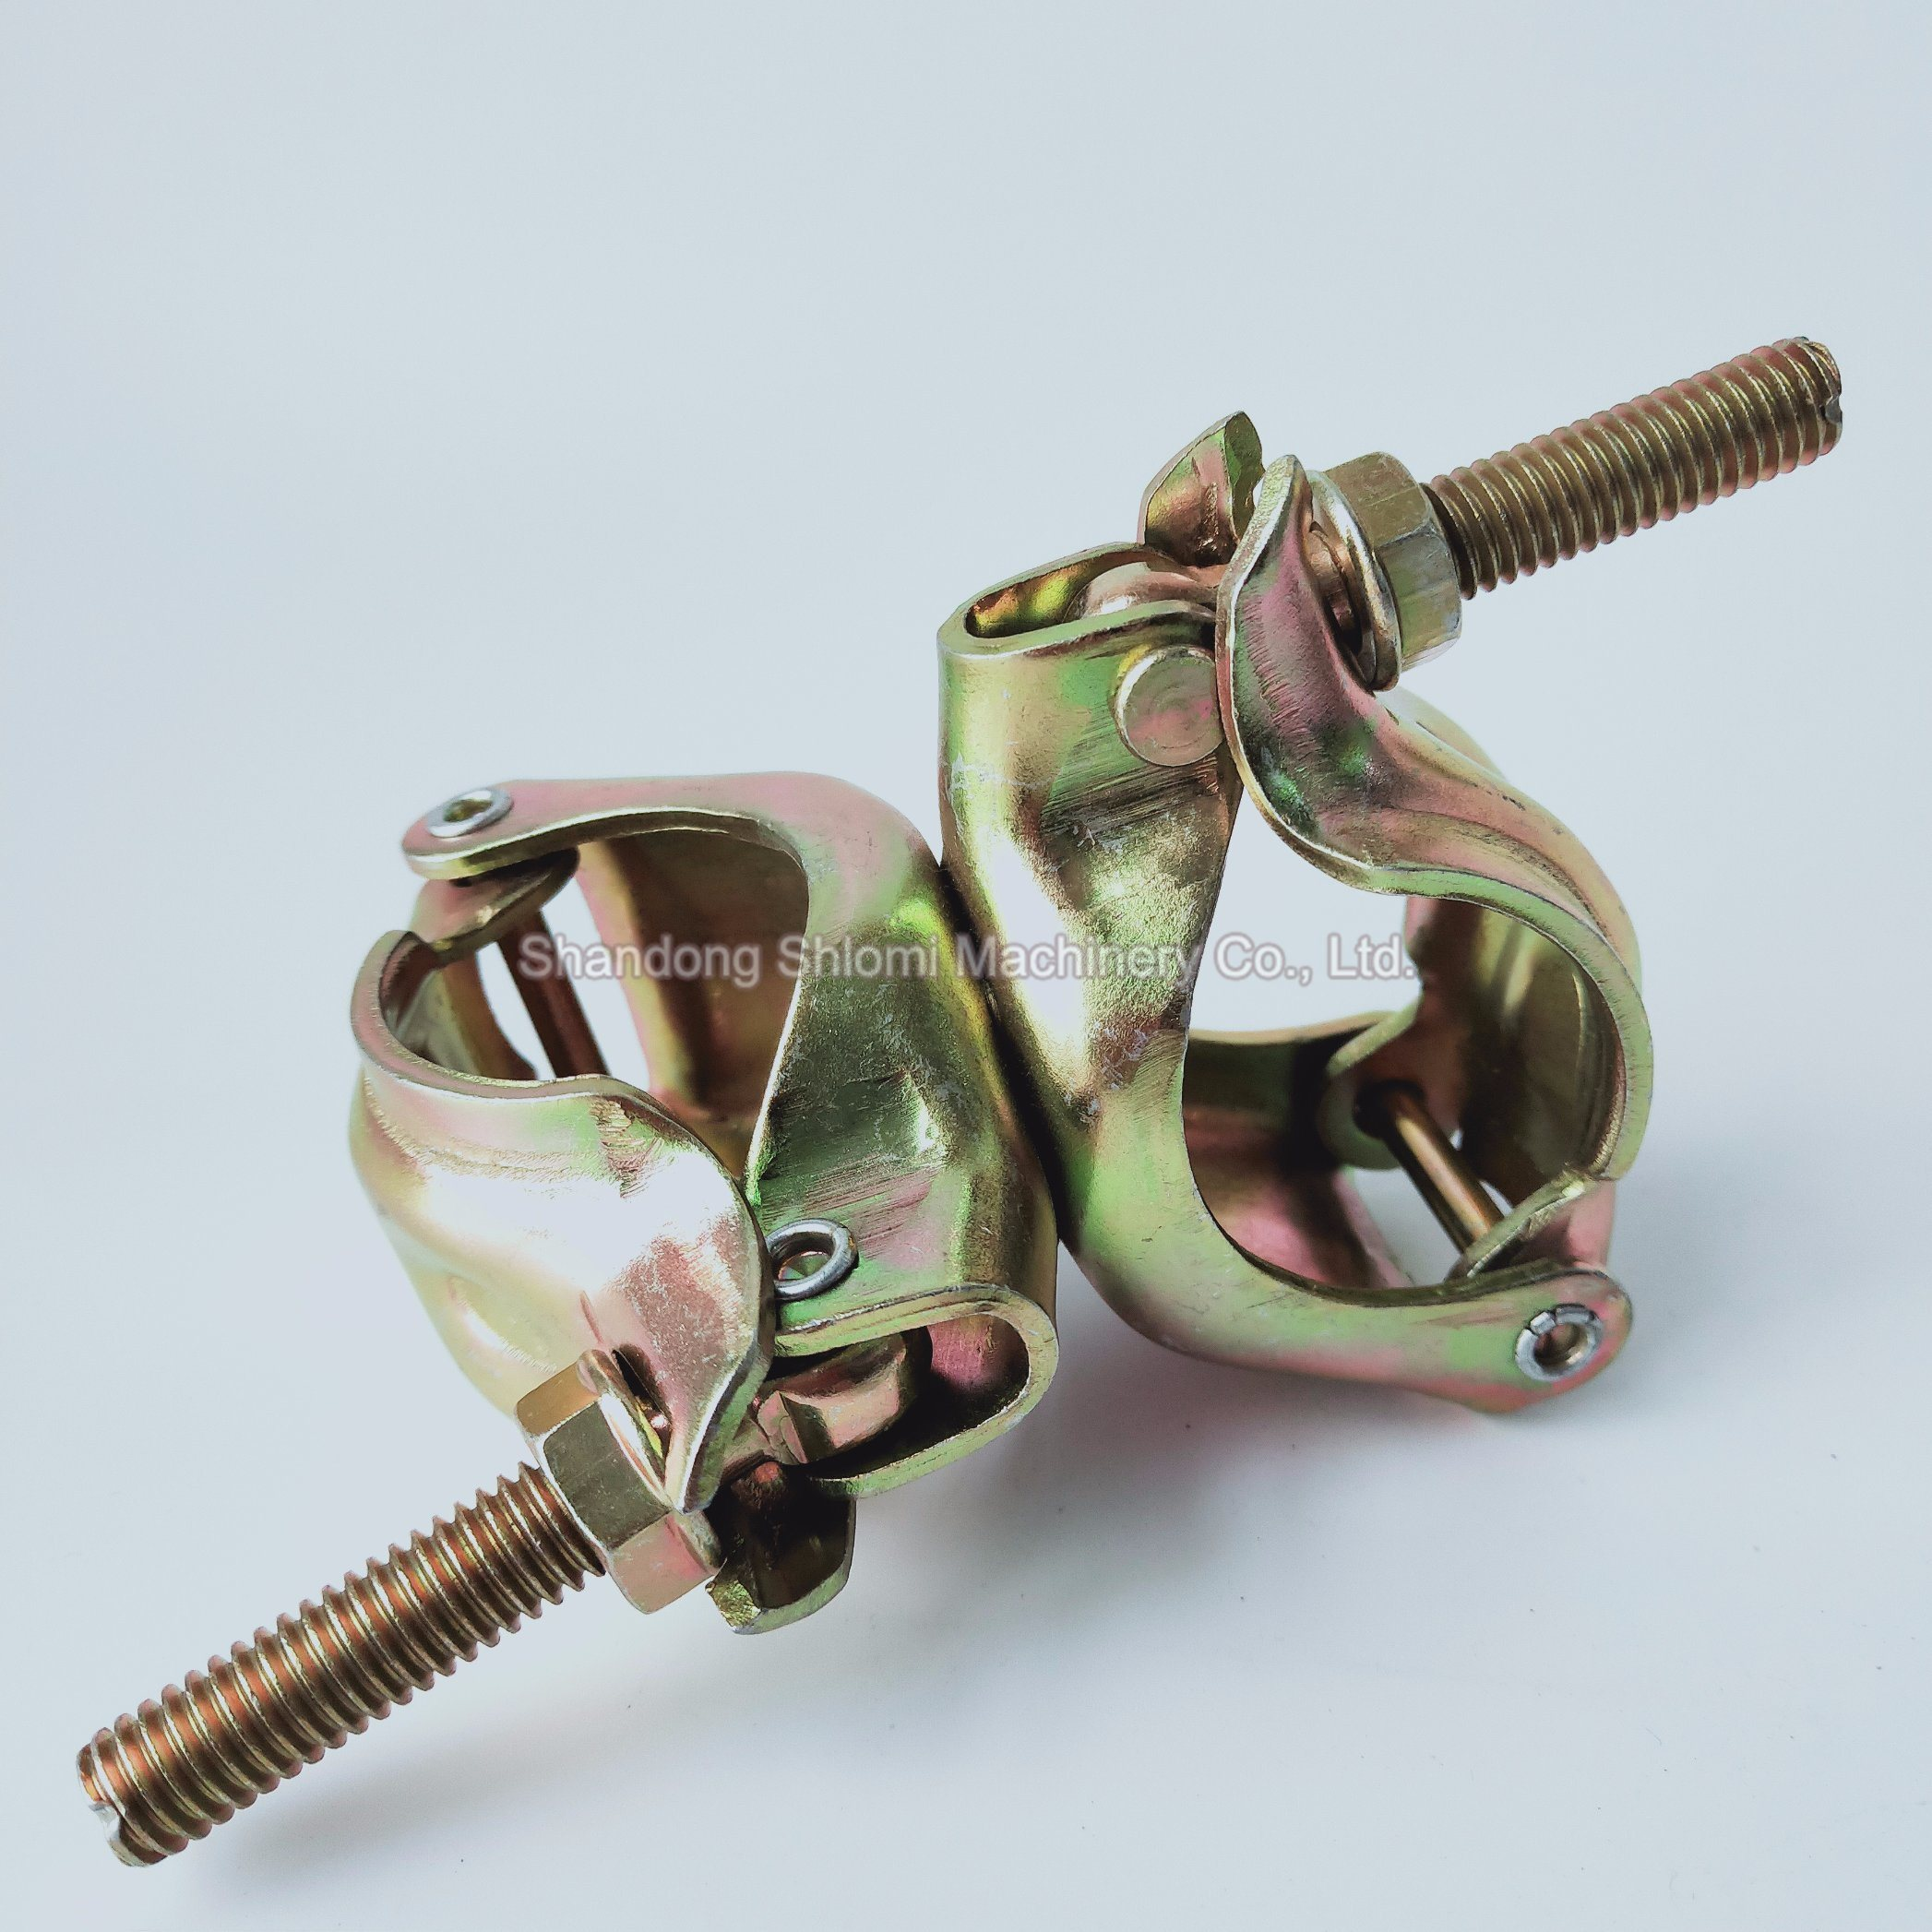 [Hot Item] British Type Pressed Scaffolding Double Coupler for Tube  Fittings En74